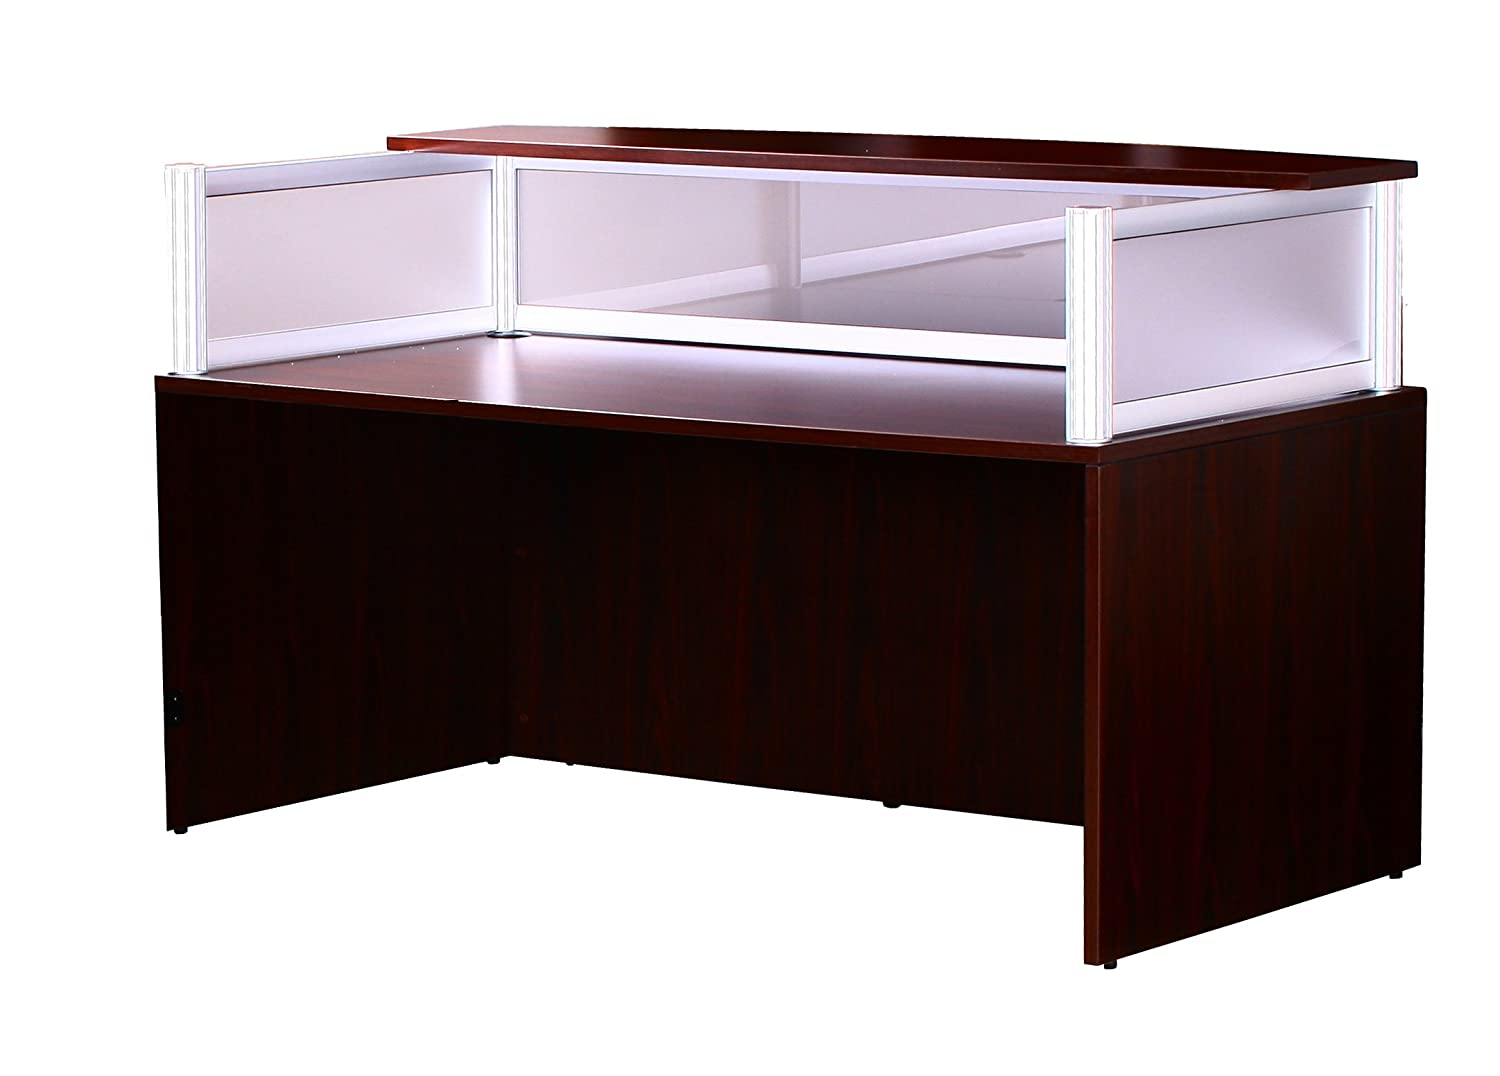 amazon com boss office products plexiglass reception desk mahogany rh amazon com boss office furniture pakistan boss office furniture trinidad